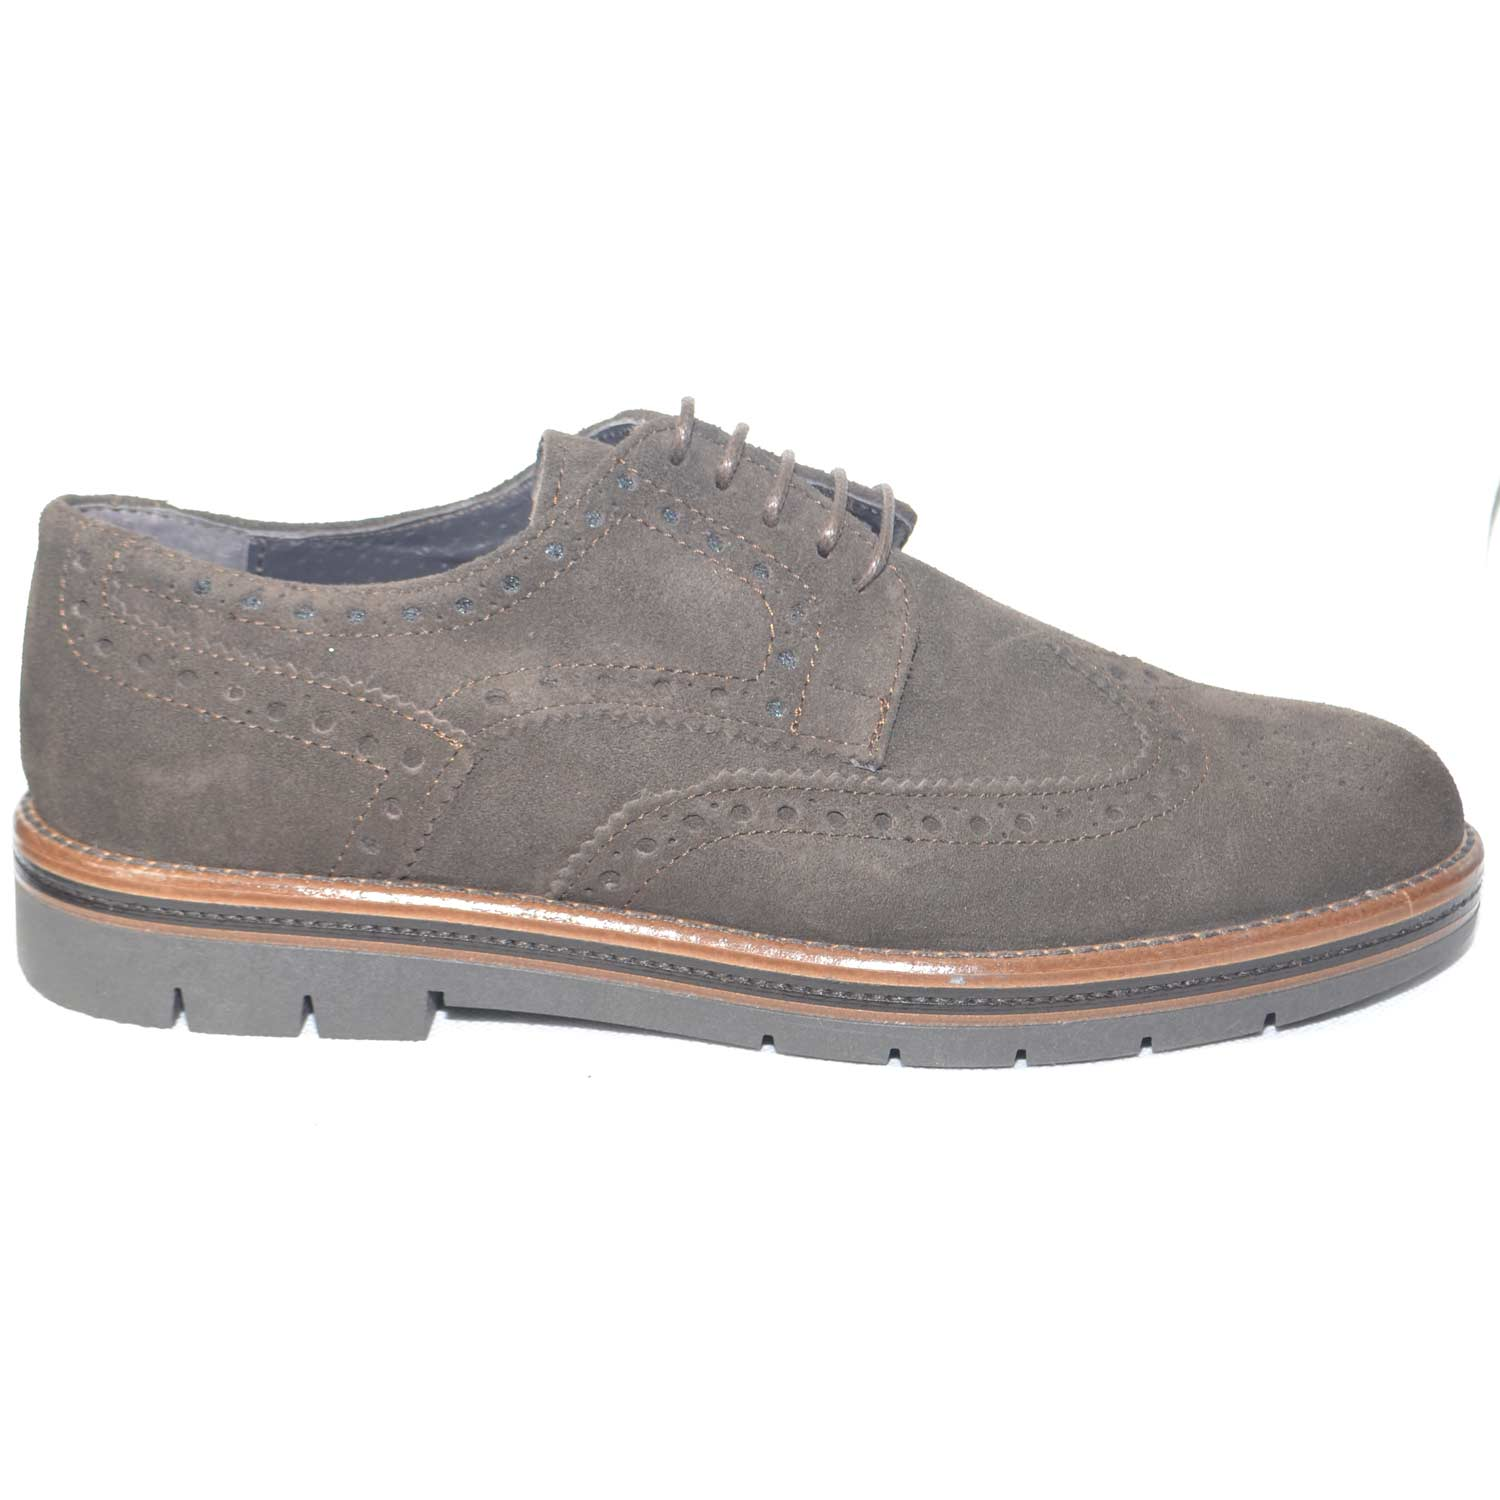 check-out a5f9d 3282a Calzature uomo scarpe francesine stringate uomo marrone fondo bicolore  antiscivolo made in italy moda comfort uomo stringate made in italy |  MaluShoes